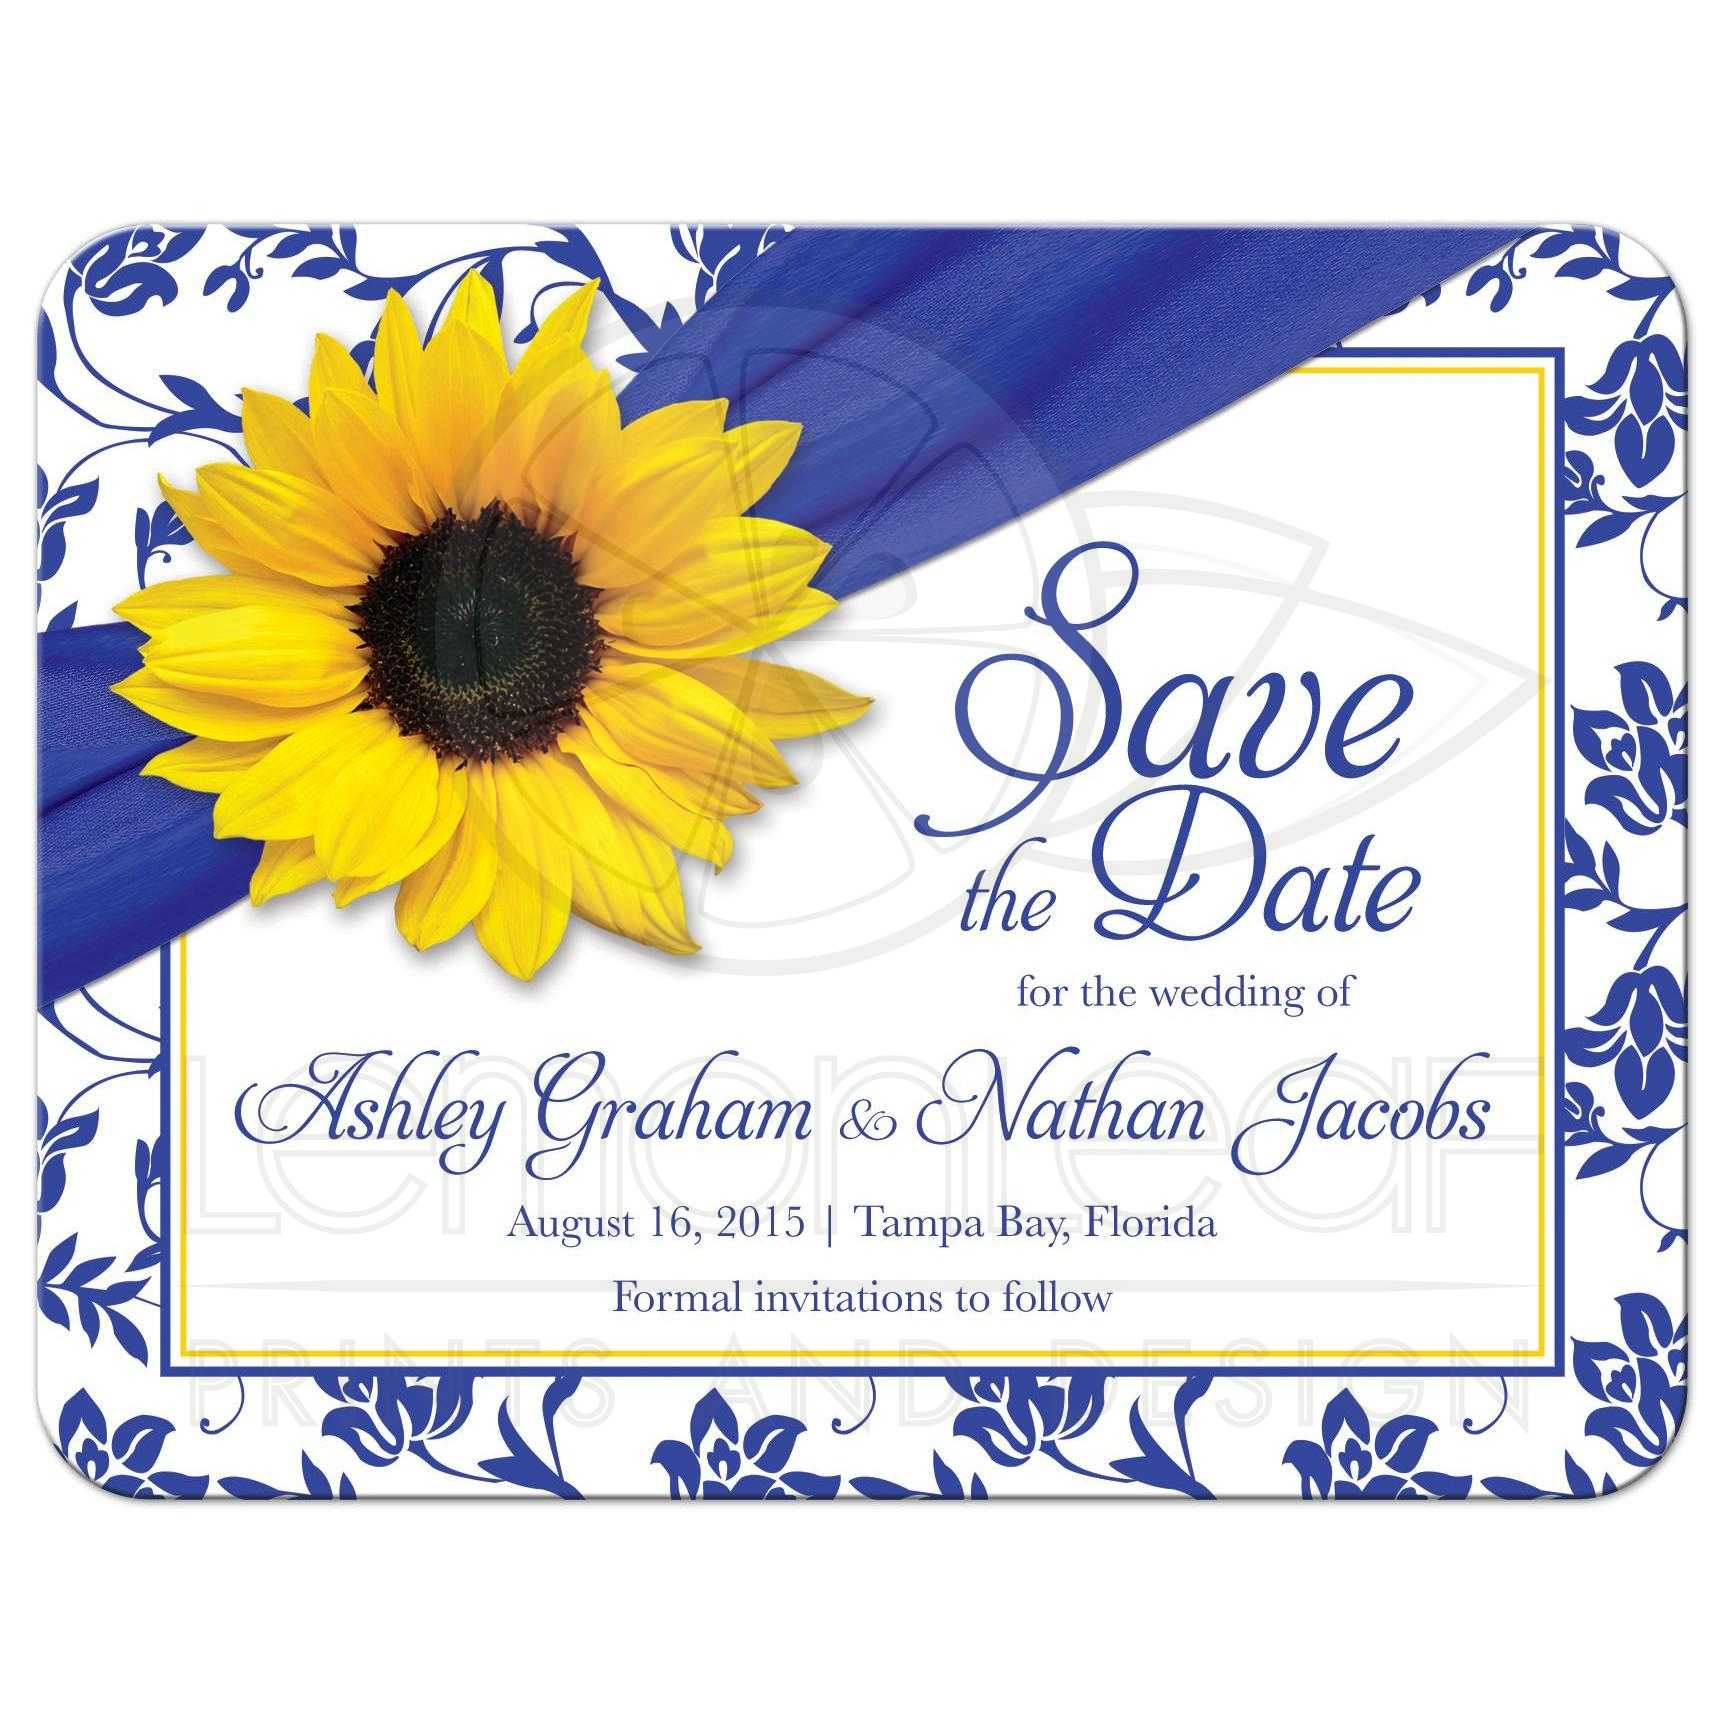 Wedding White And Yellow: Wedding Save The Date Announcement Sunflower Royal Blue Damask